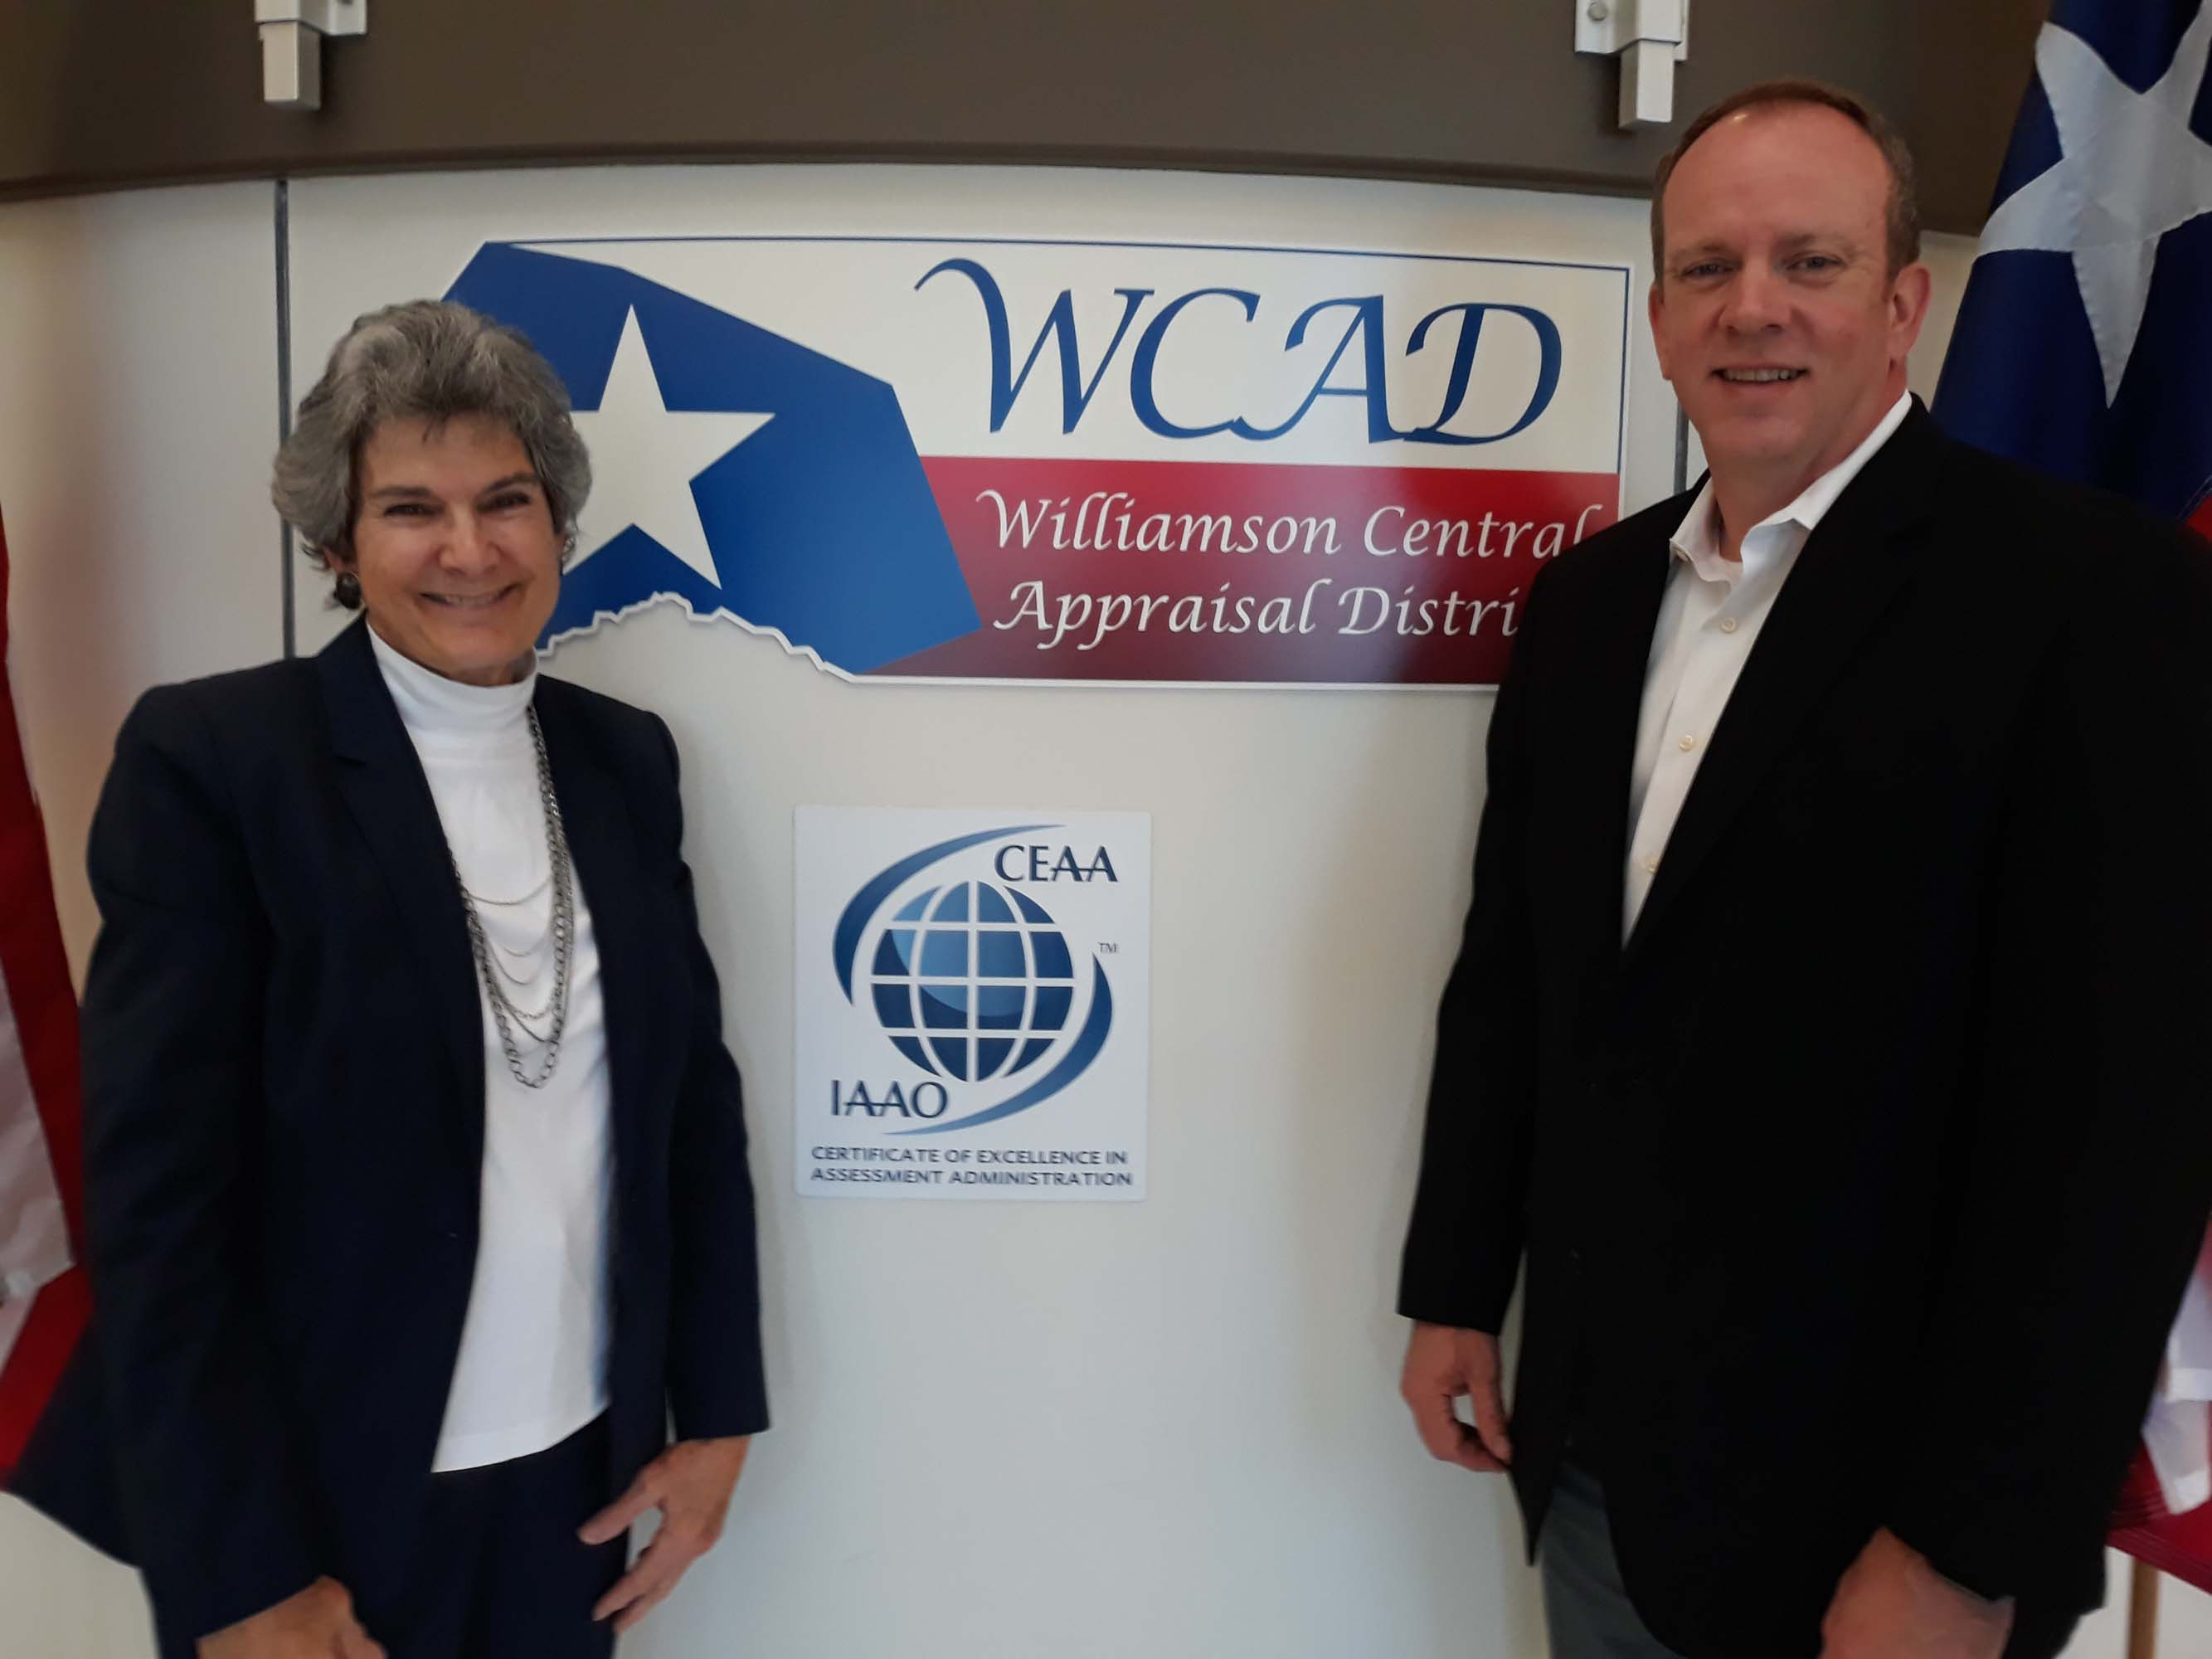 Commissioner Cook and Alvin Lankford, Williamson County's chief appraiser, flank the Certificate of Excellence in Assessment Administration plaque the Williamson Central Appraisal District received in 2013.